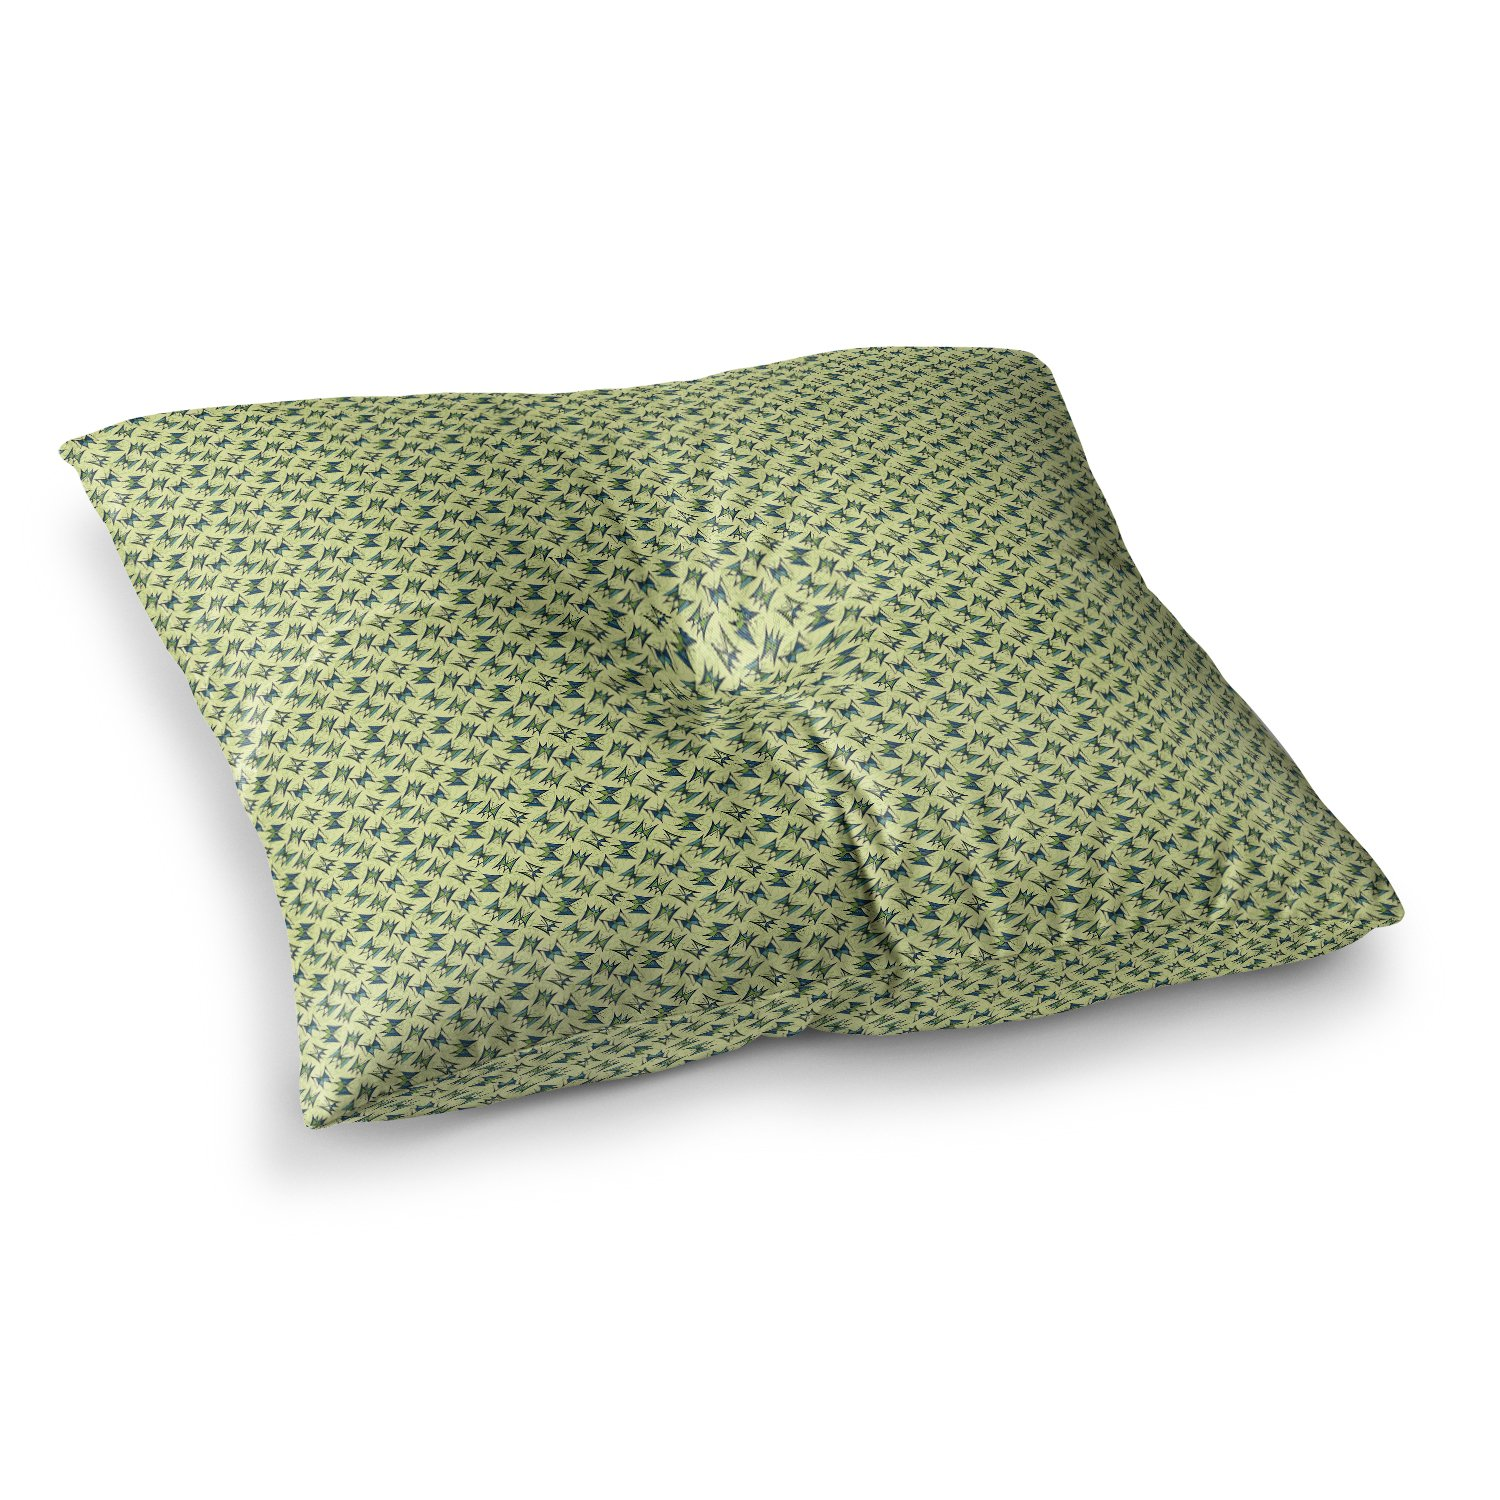 Kess InHouse Holly Helgeson Flutterby Yellow Lime, 23' x 23' Square Floor Pillow